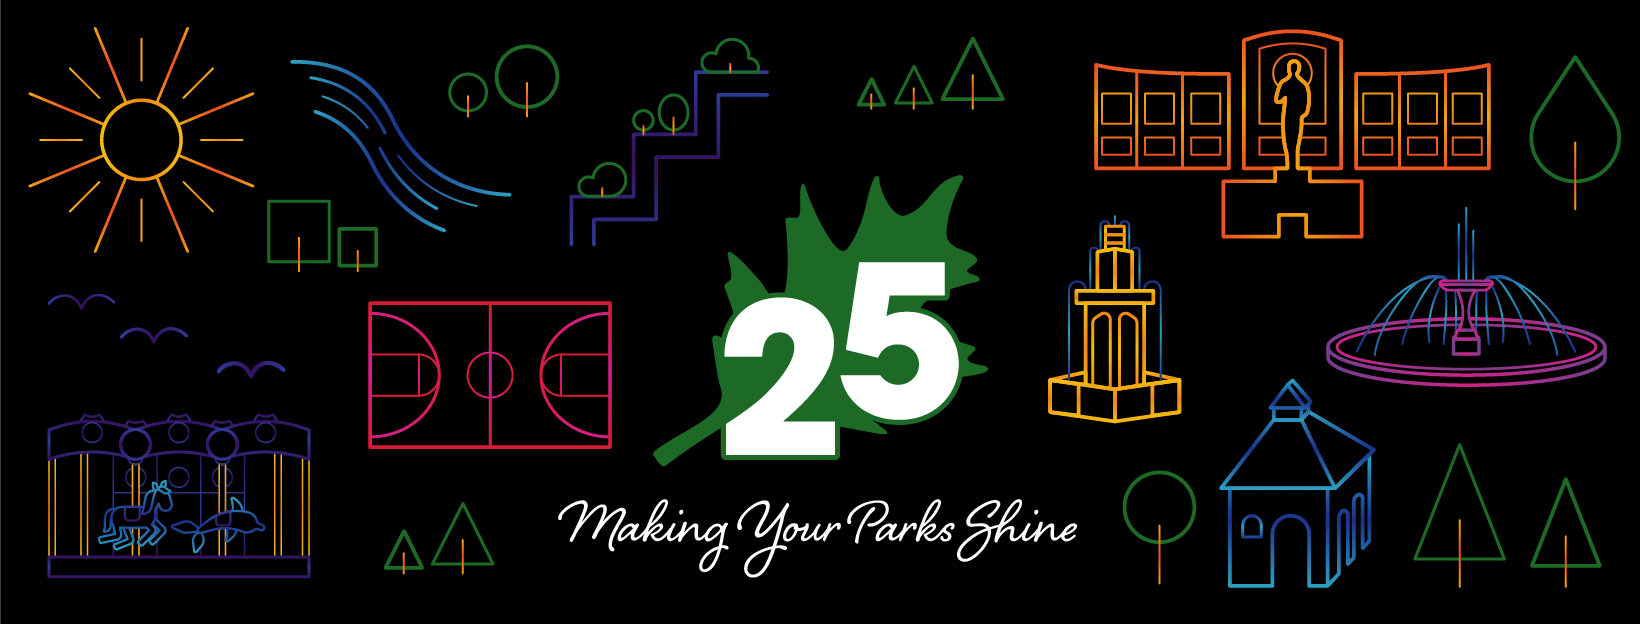 Making Your Parks Shine Event Banner